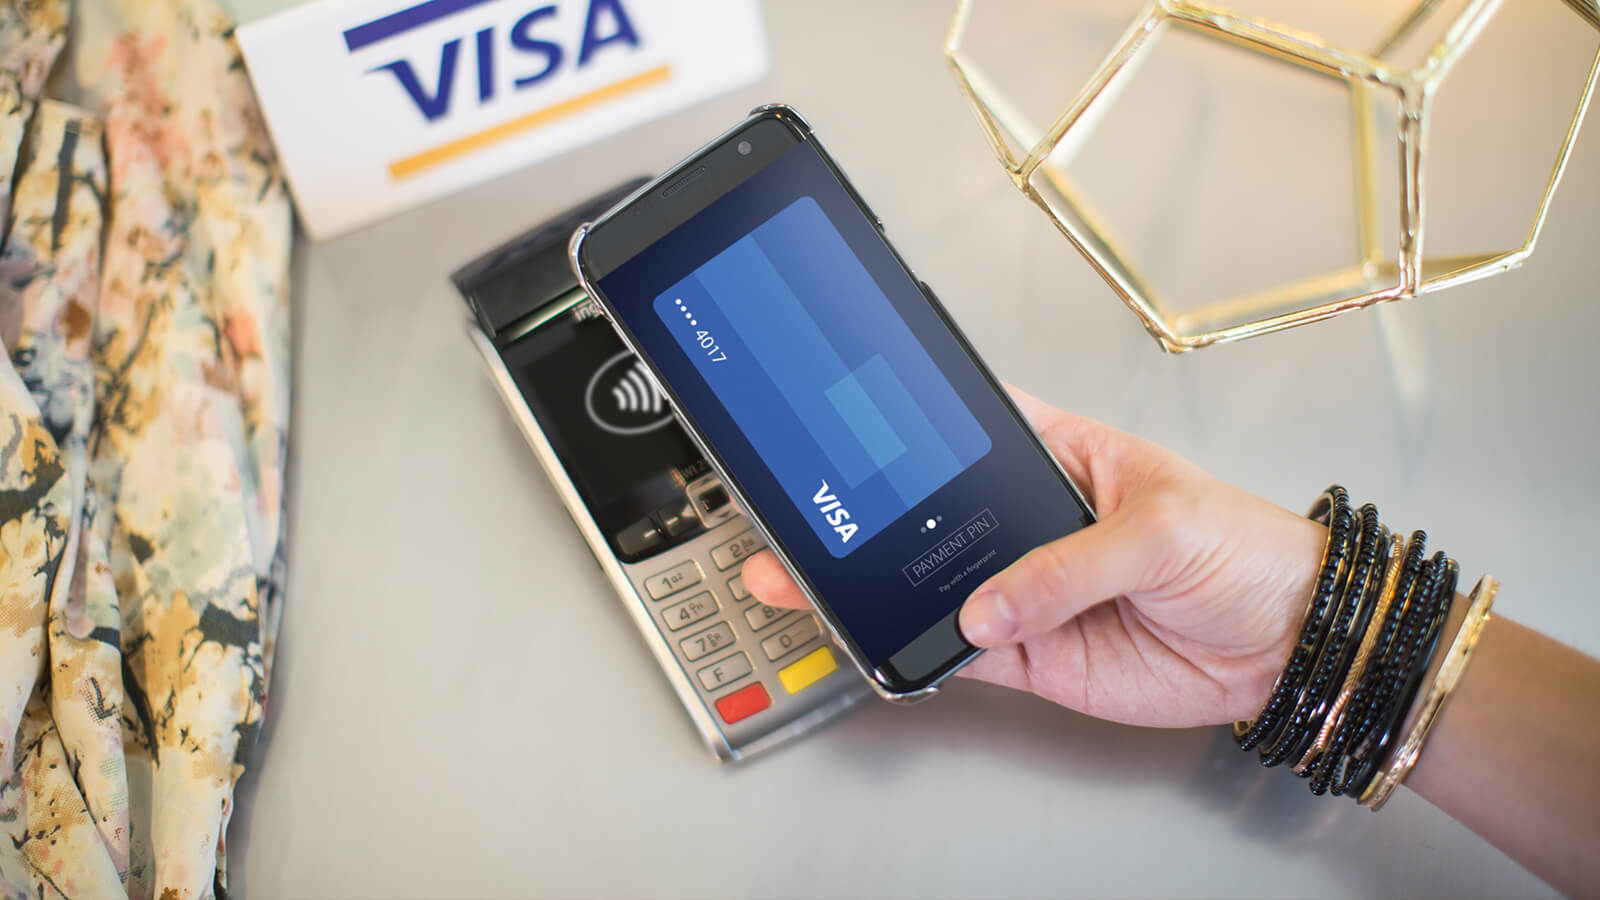 A closeup of a shopper using the Visa card on her phone to make a contactless payment at a terminal.